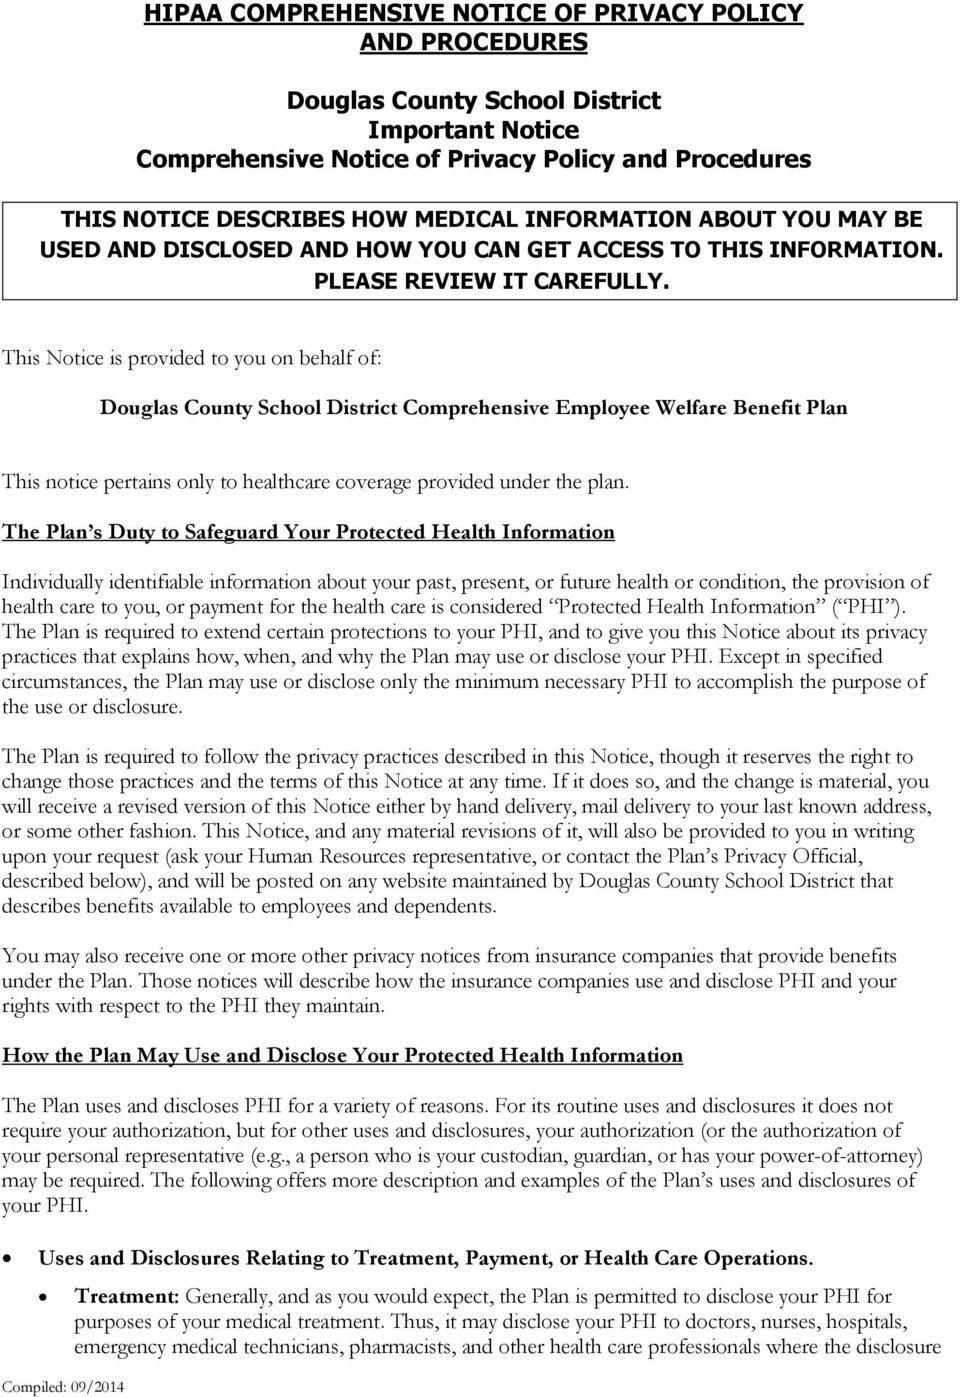 This Notice is provided to you on behalf of: Douglas County School District Comprehensive Employee Welfare Benefit Plan This notice pertains only to healthcare coverage provided under the plan.